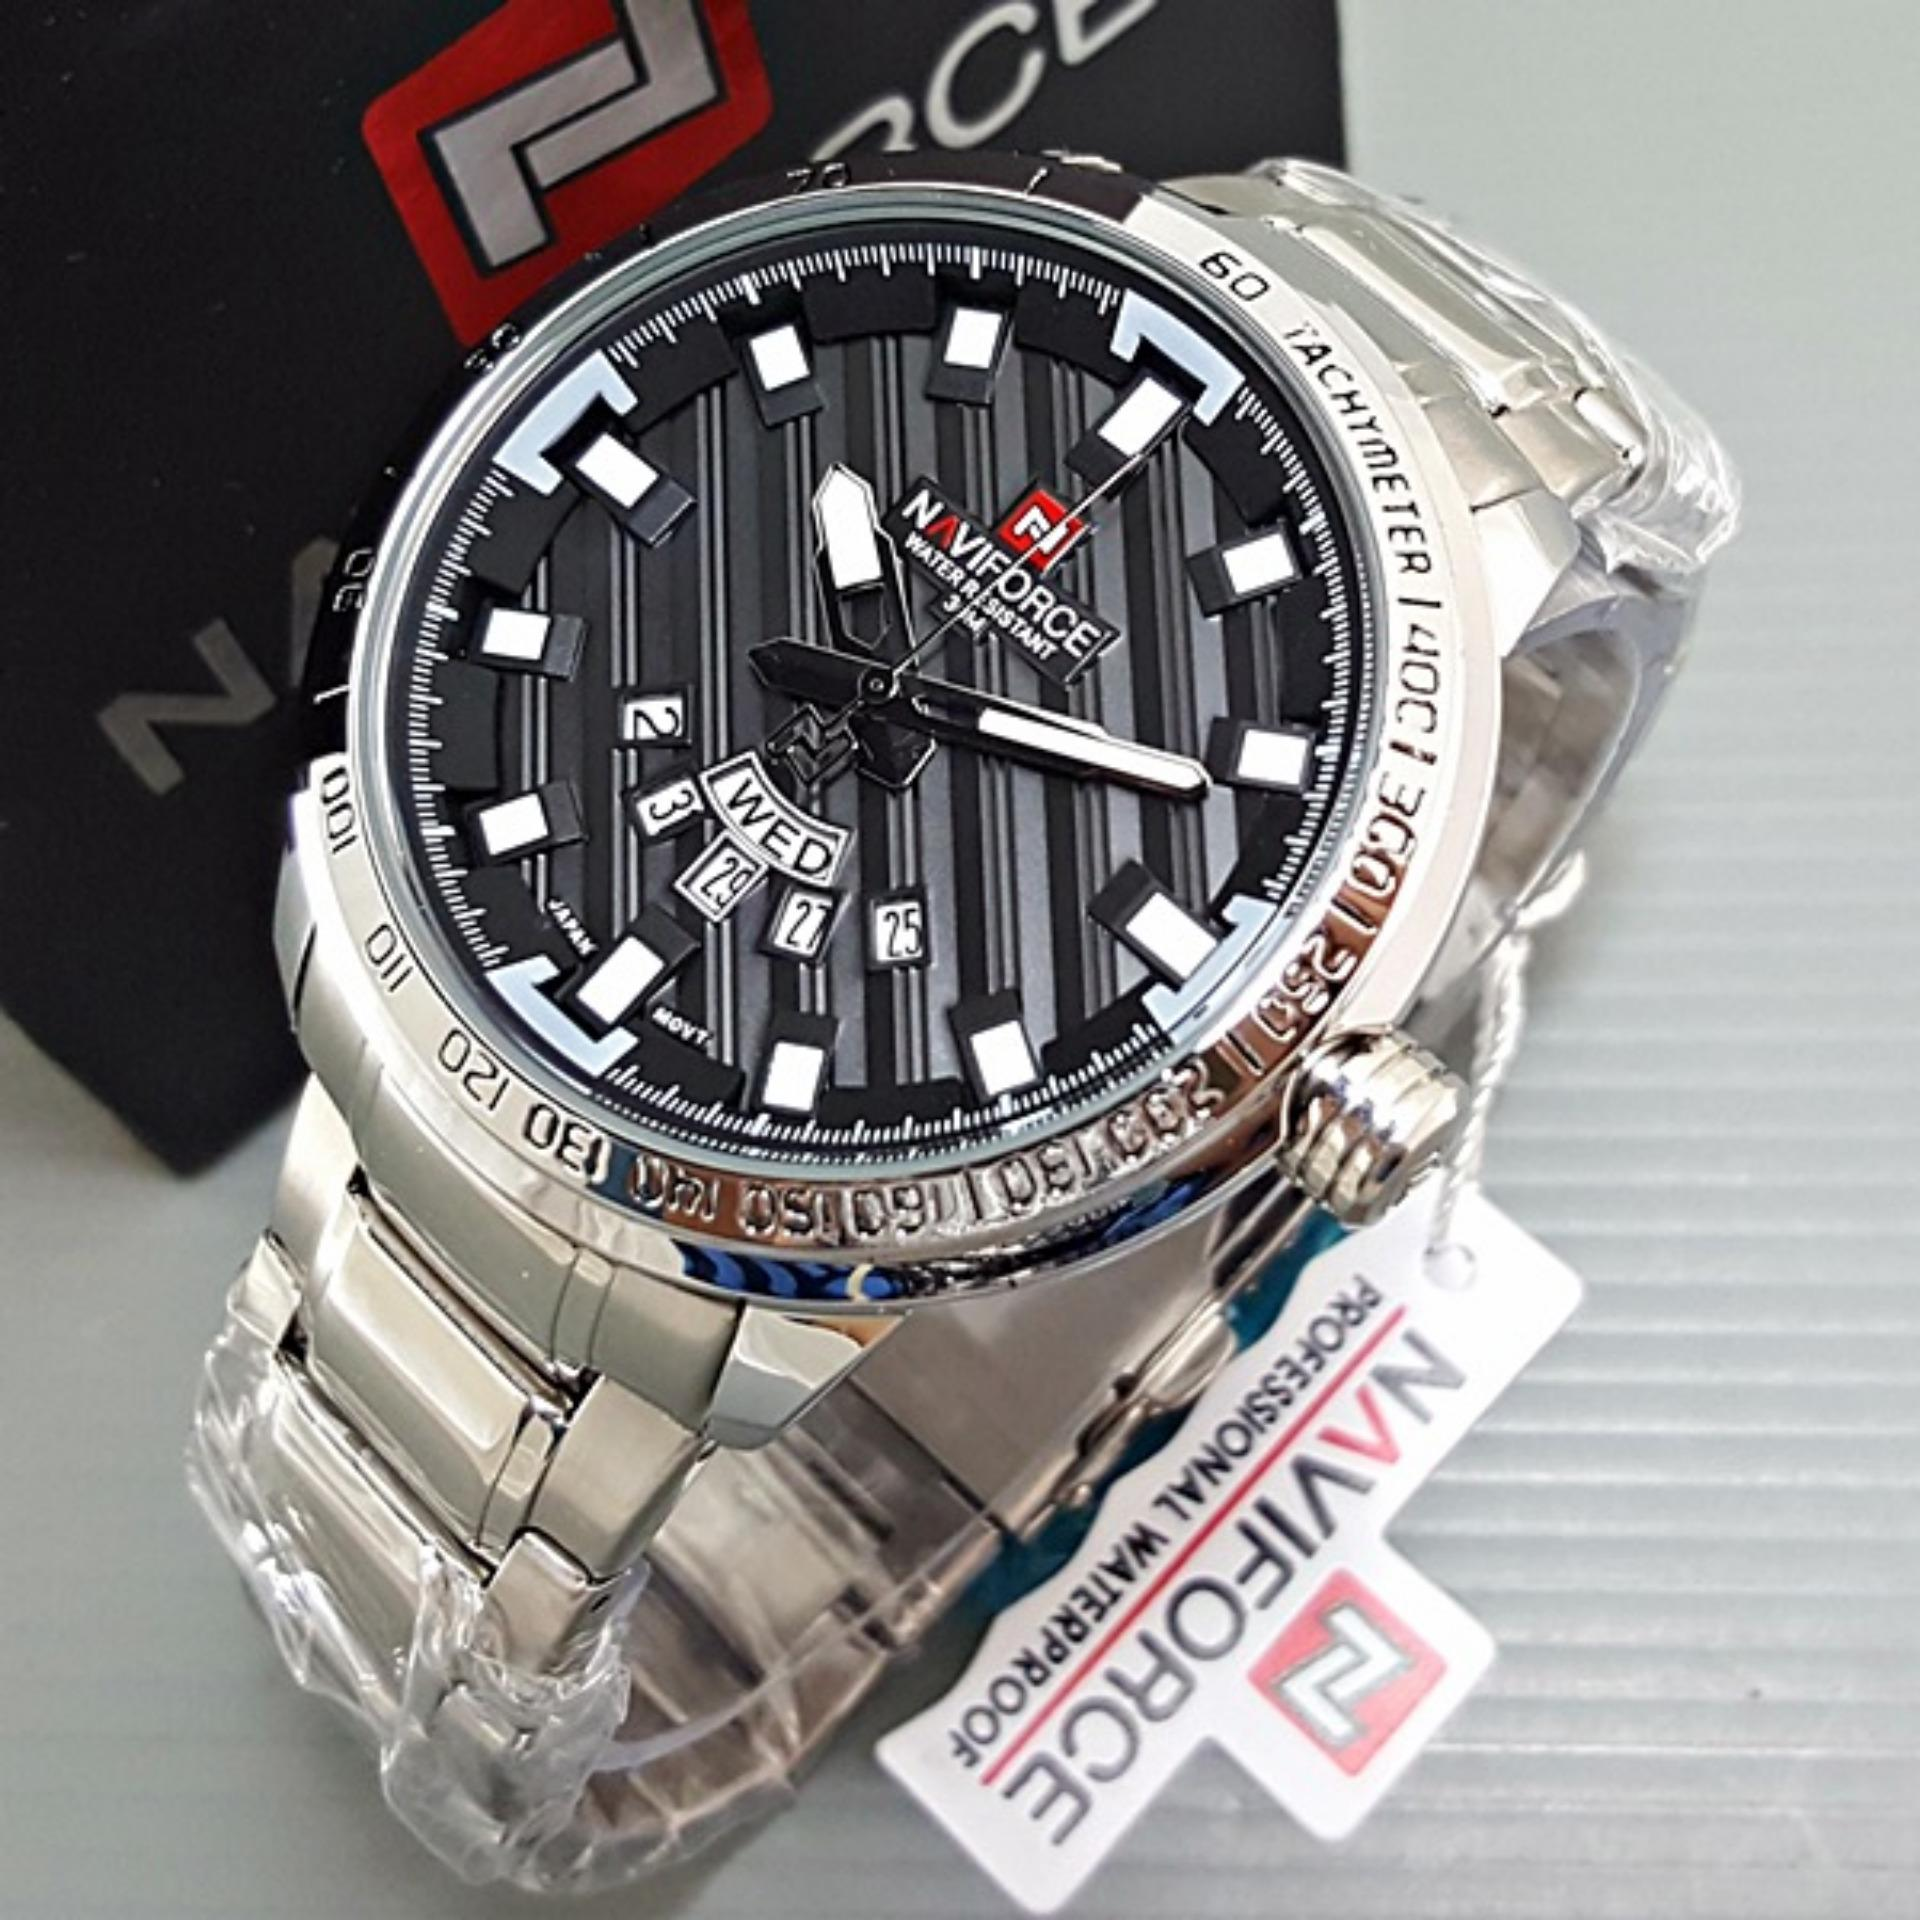 Naviforce Nf 9068 Jam Tangan Kasual Pria Leather Strap Spec Dan Ts 165 Hitam List Coklat